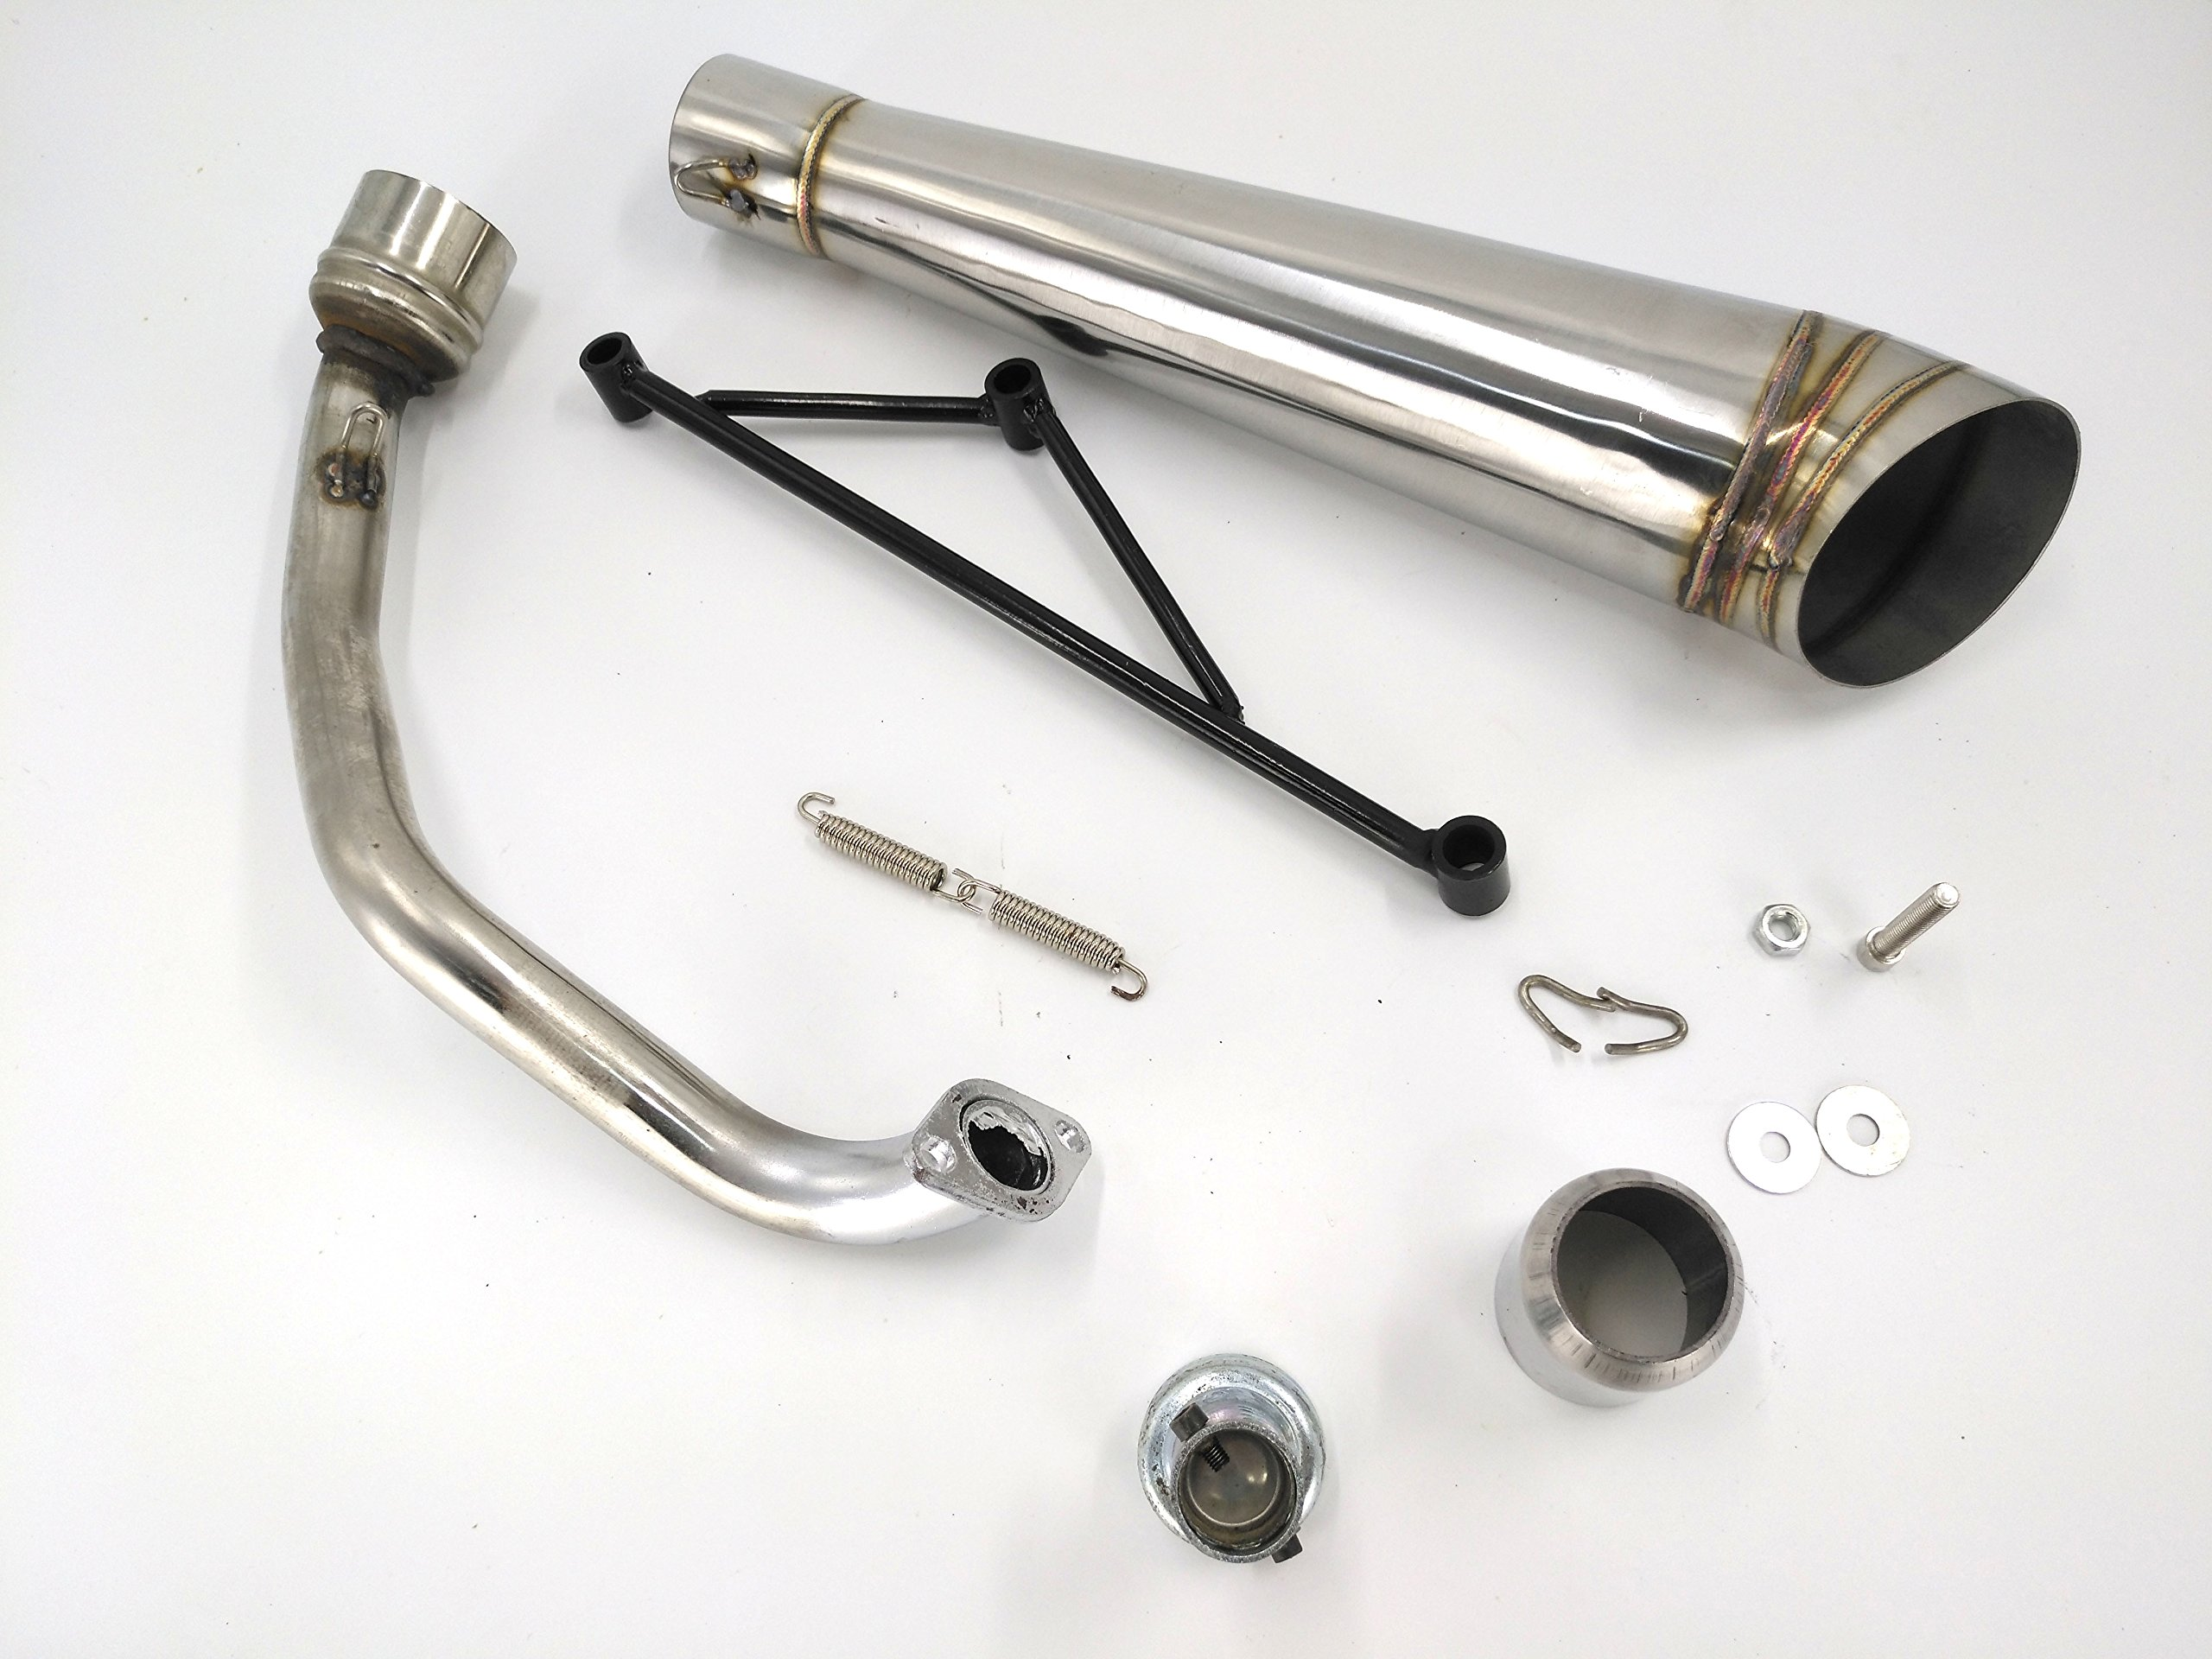 Chinese 125 Engine Parts Honda Ruckus Diagram Annpee Stainless Steel Exhaust Muffler System For Gy6 125cc 150cc Most Scootershonda